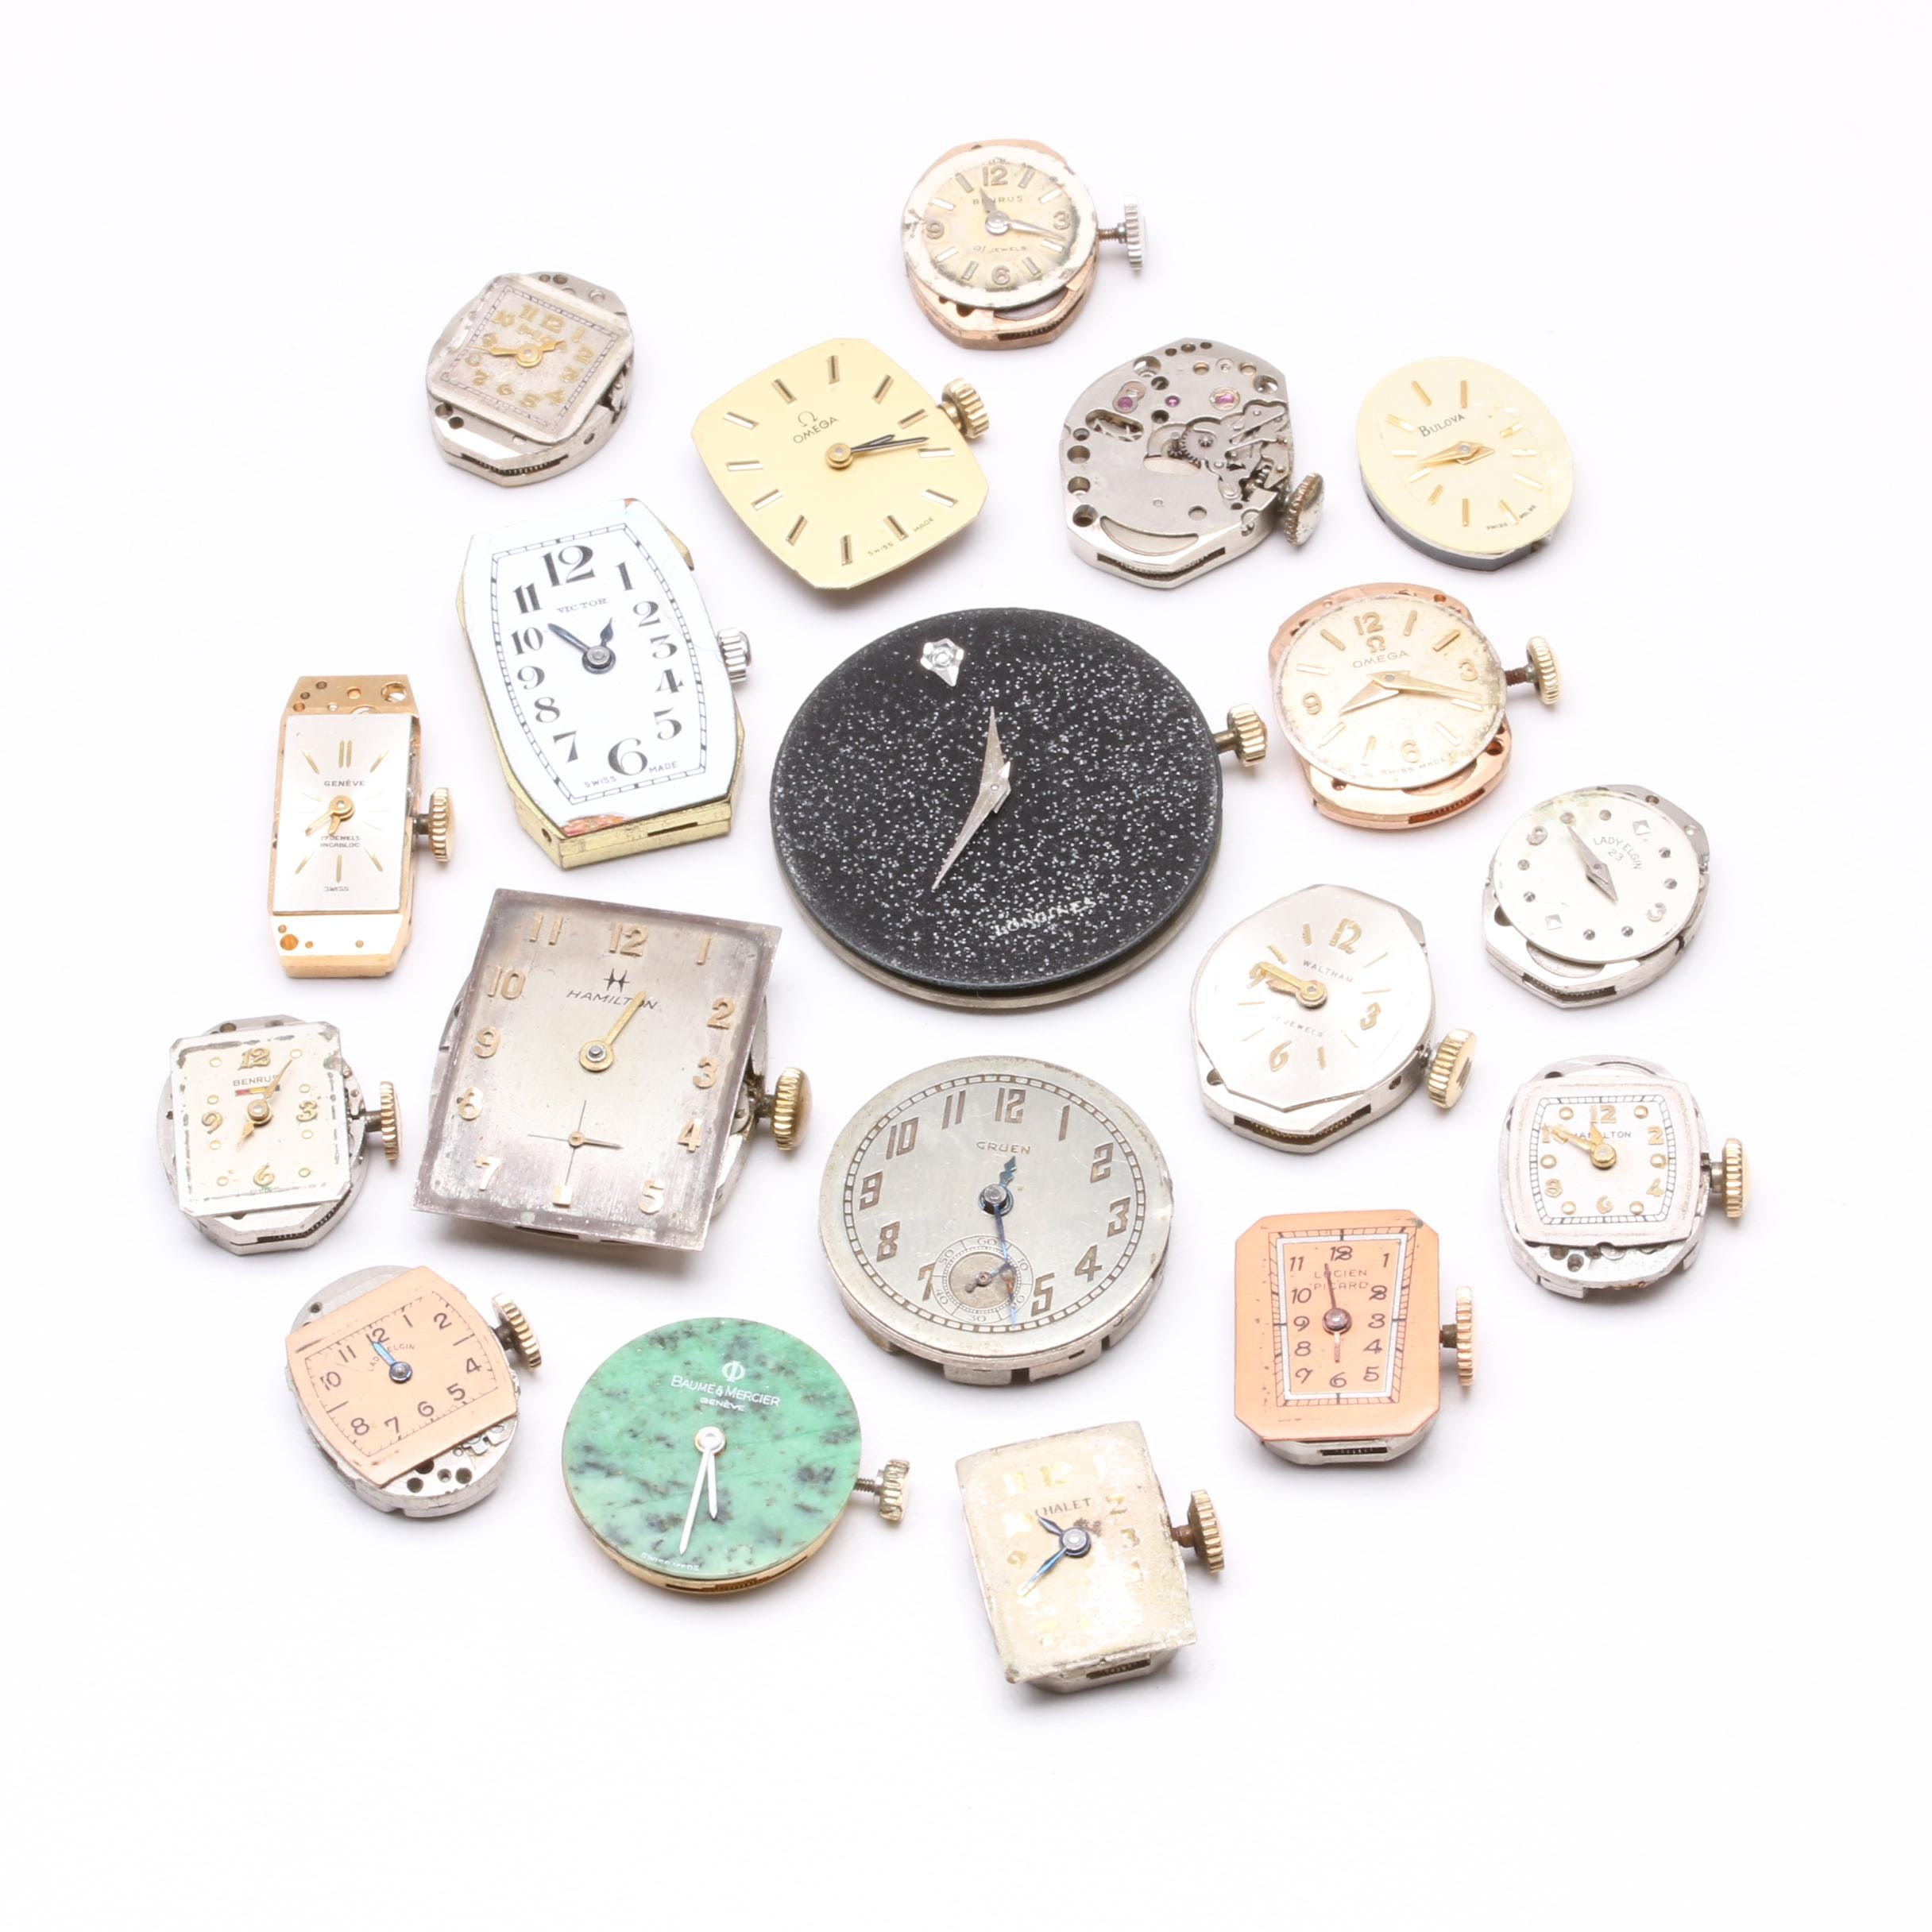 Watch Movement Assortment Including Bulova, Benrus, and Hamilton